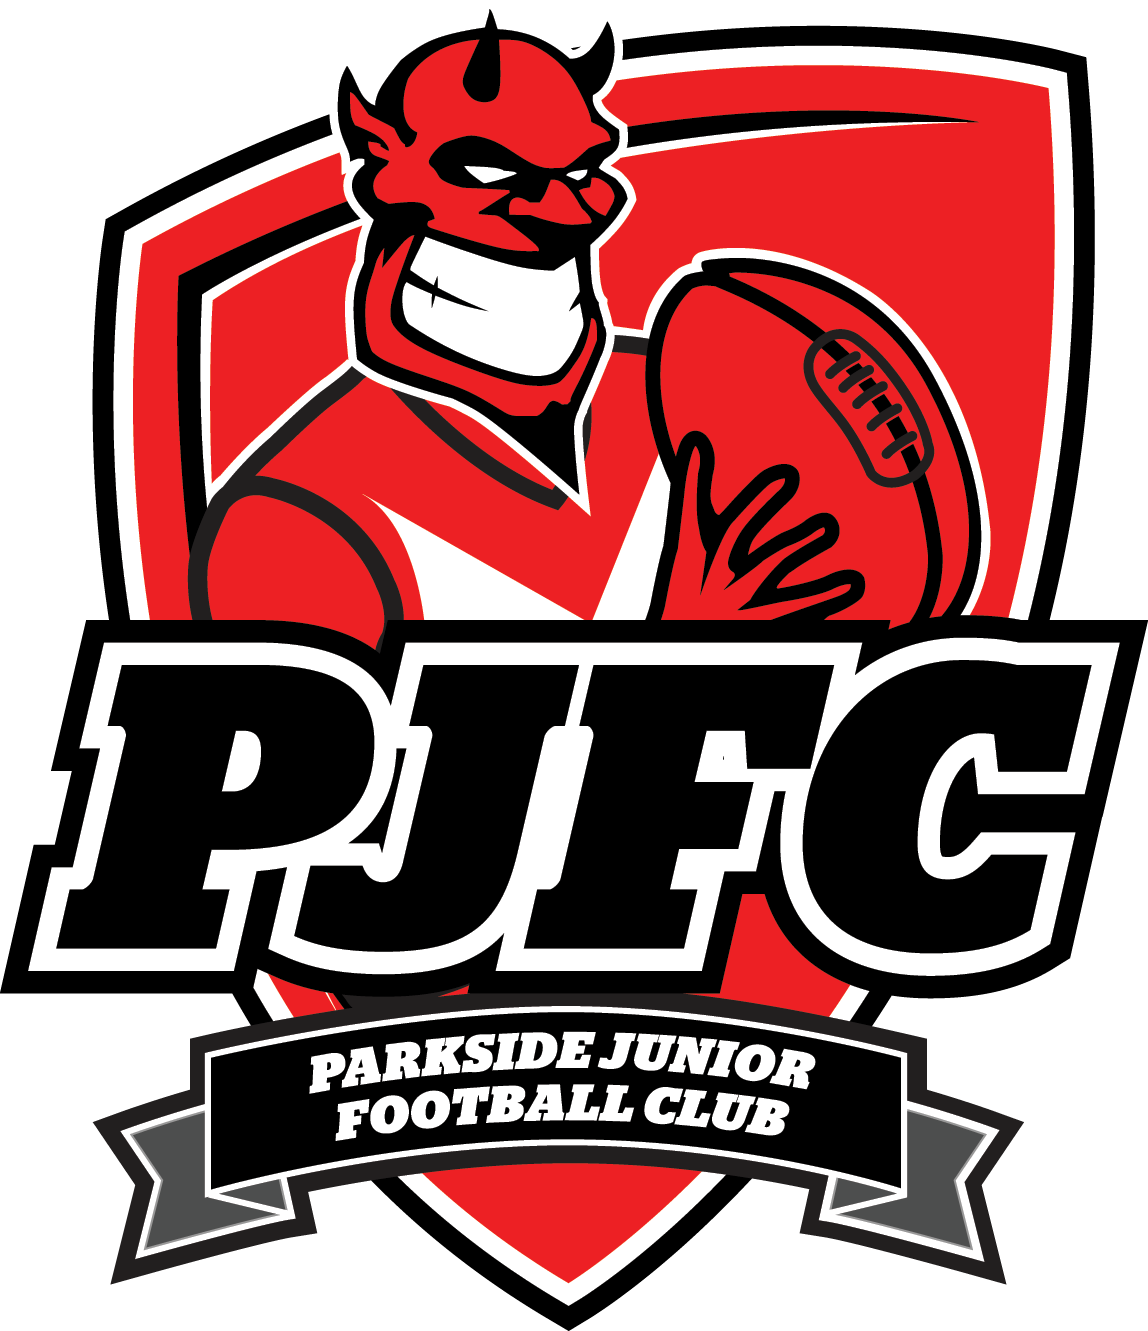 Parkside Junior Football Club